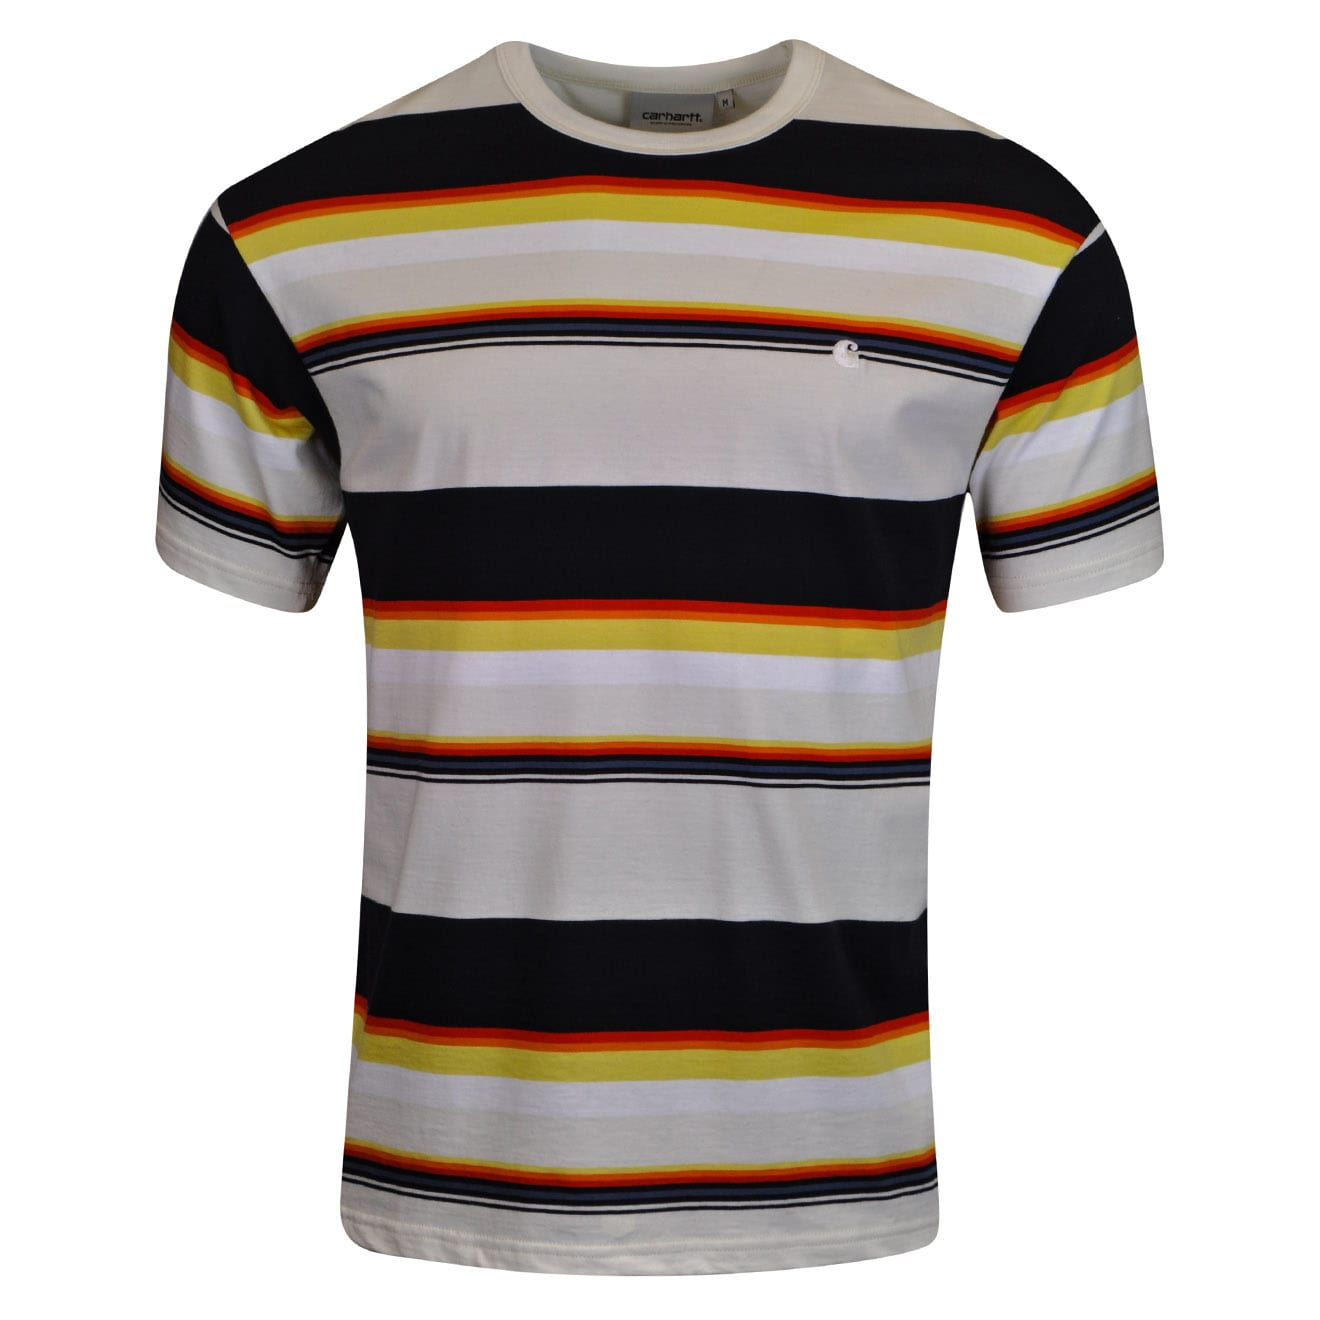 Carhartt sunder stripe t shirt the sporting lodge for Carhartt tee shirts sale